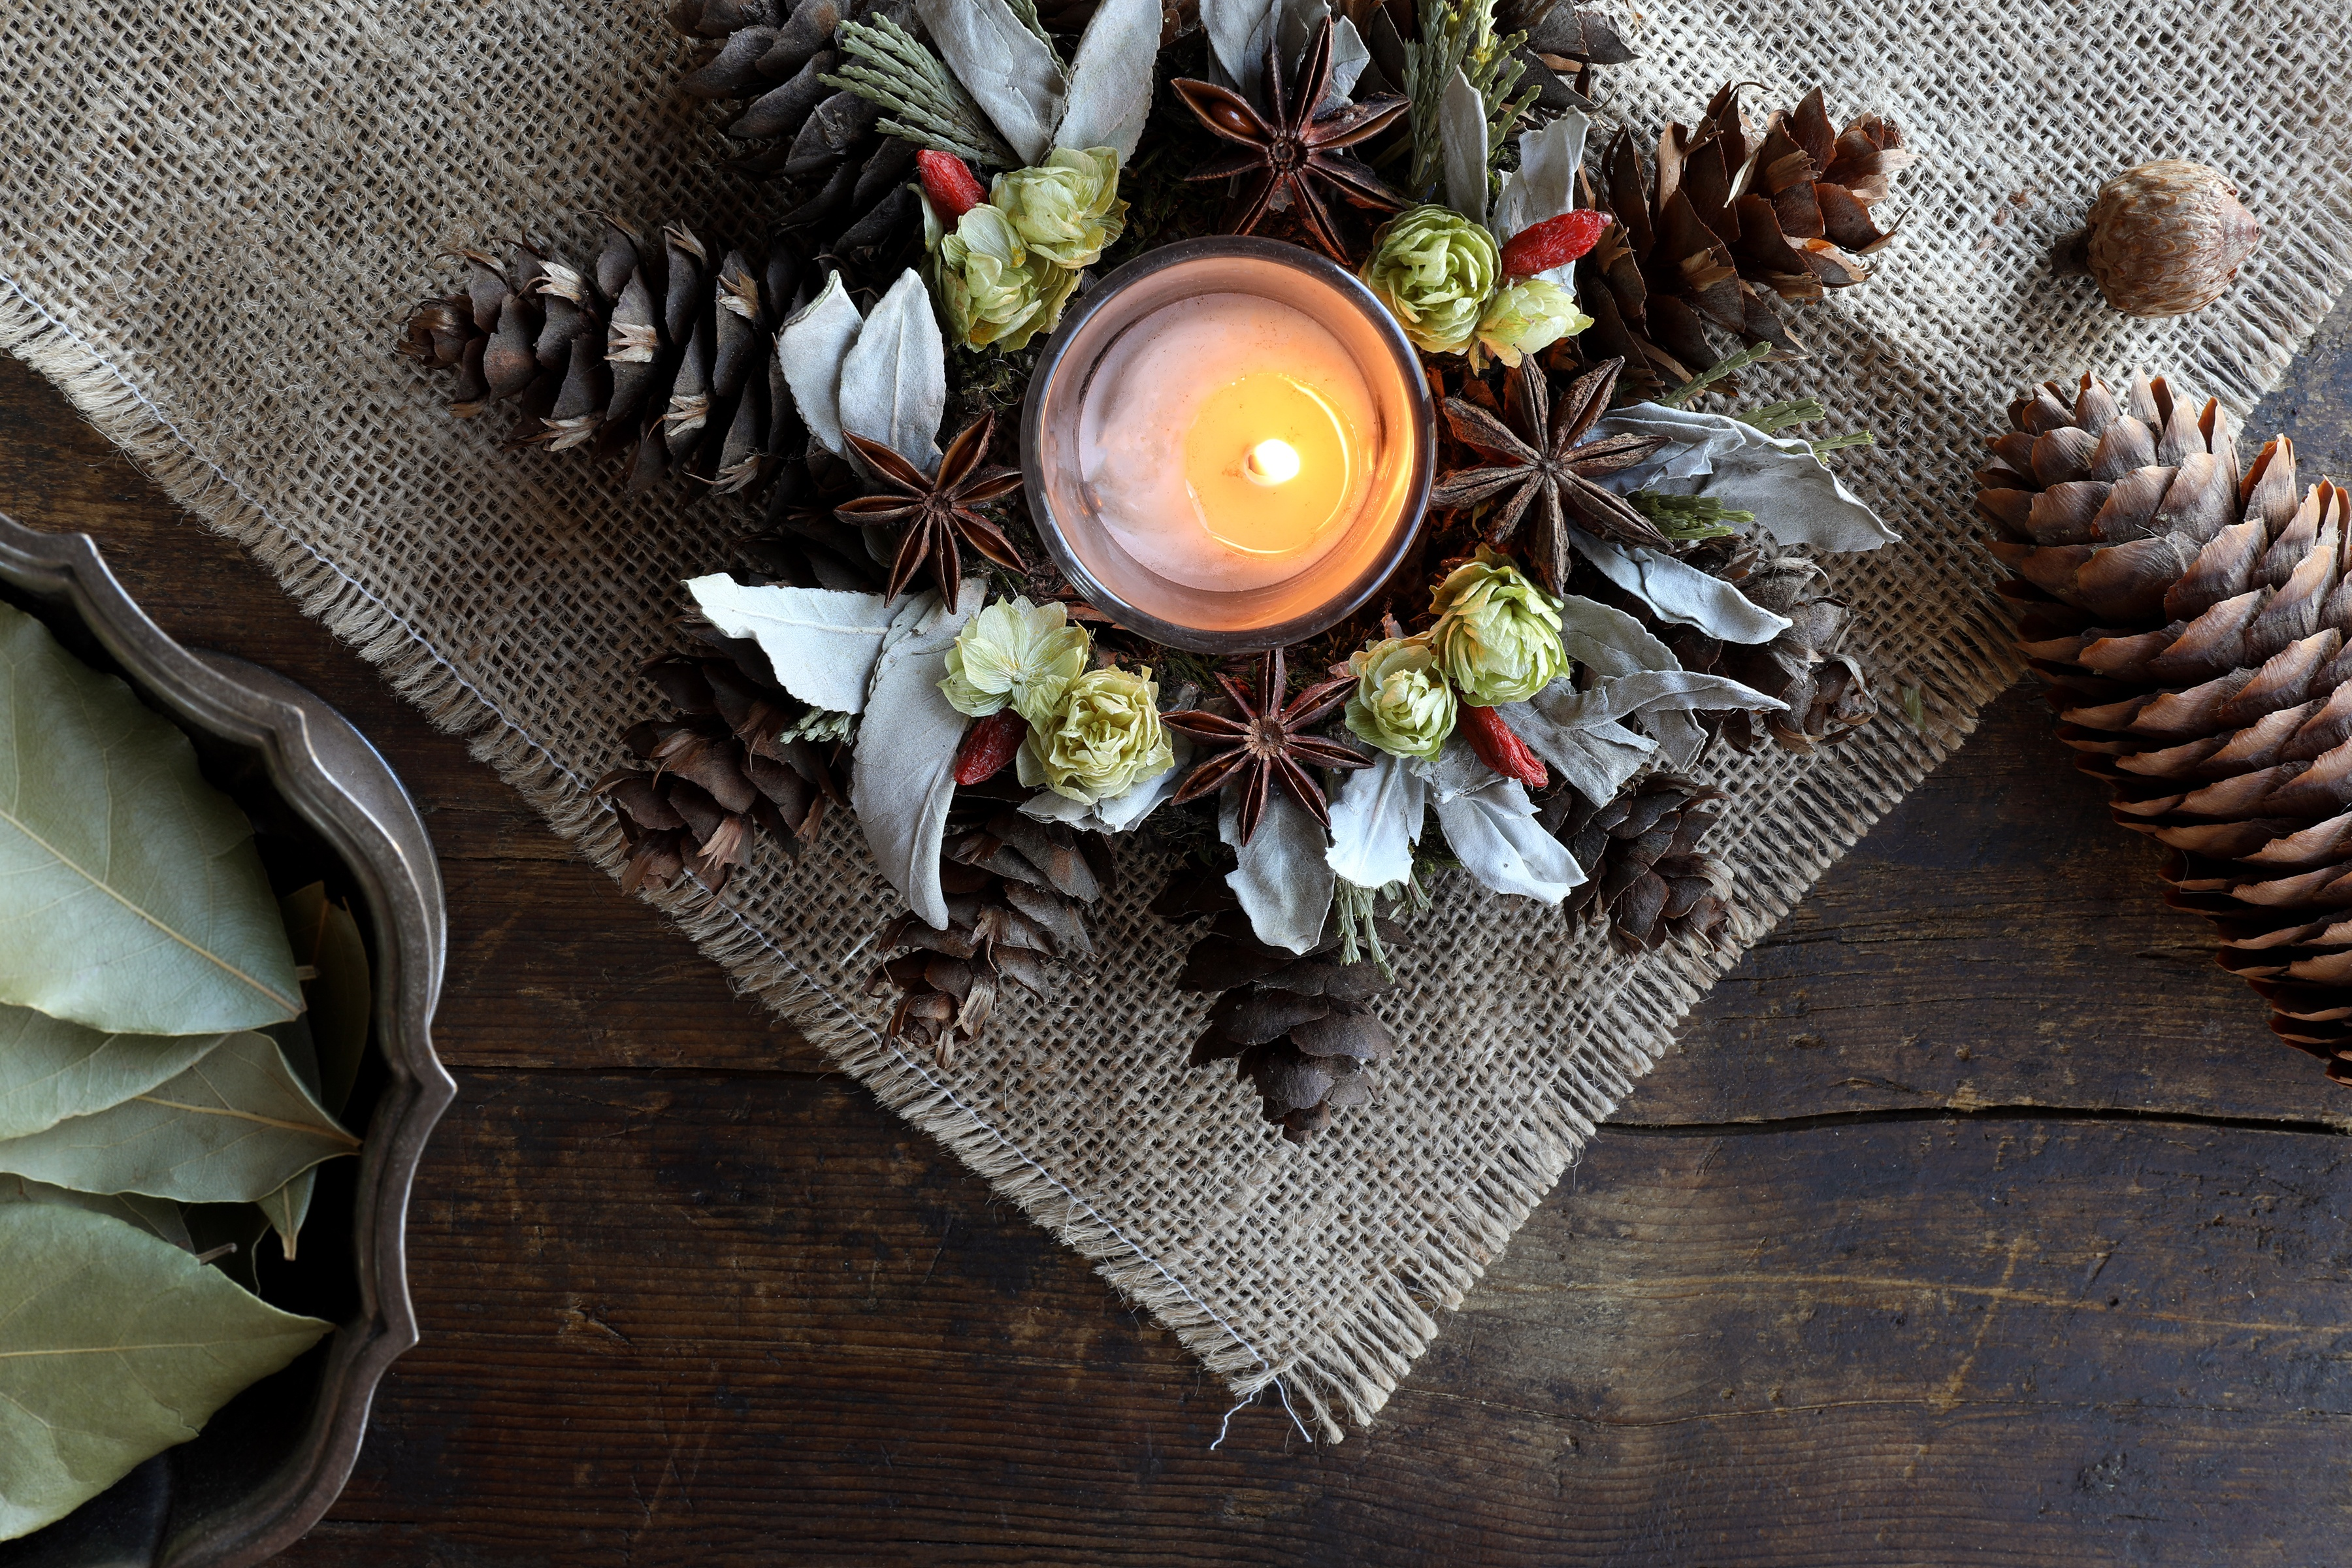 Center piece with holiday foliage decor and candle burning in middle , displayed on rustic wooden table and burlap